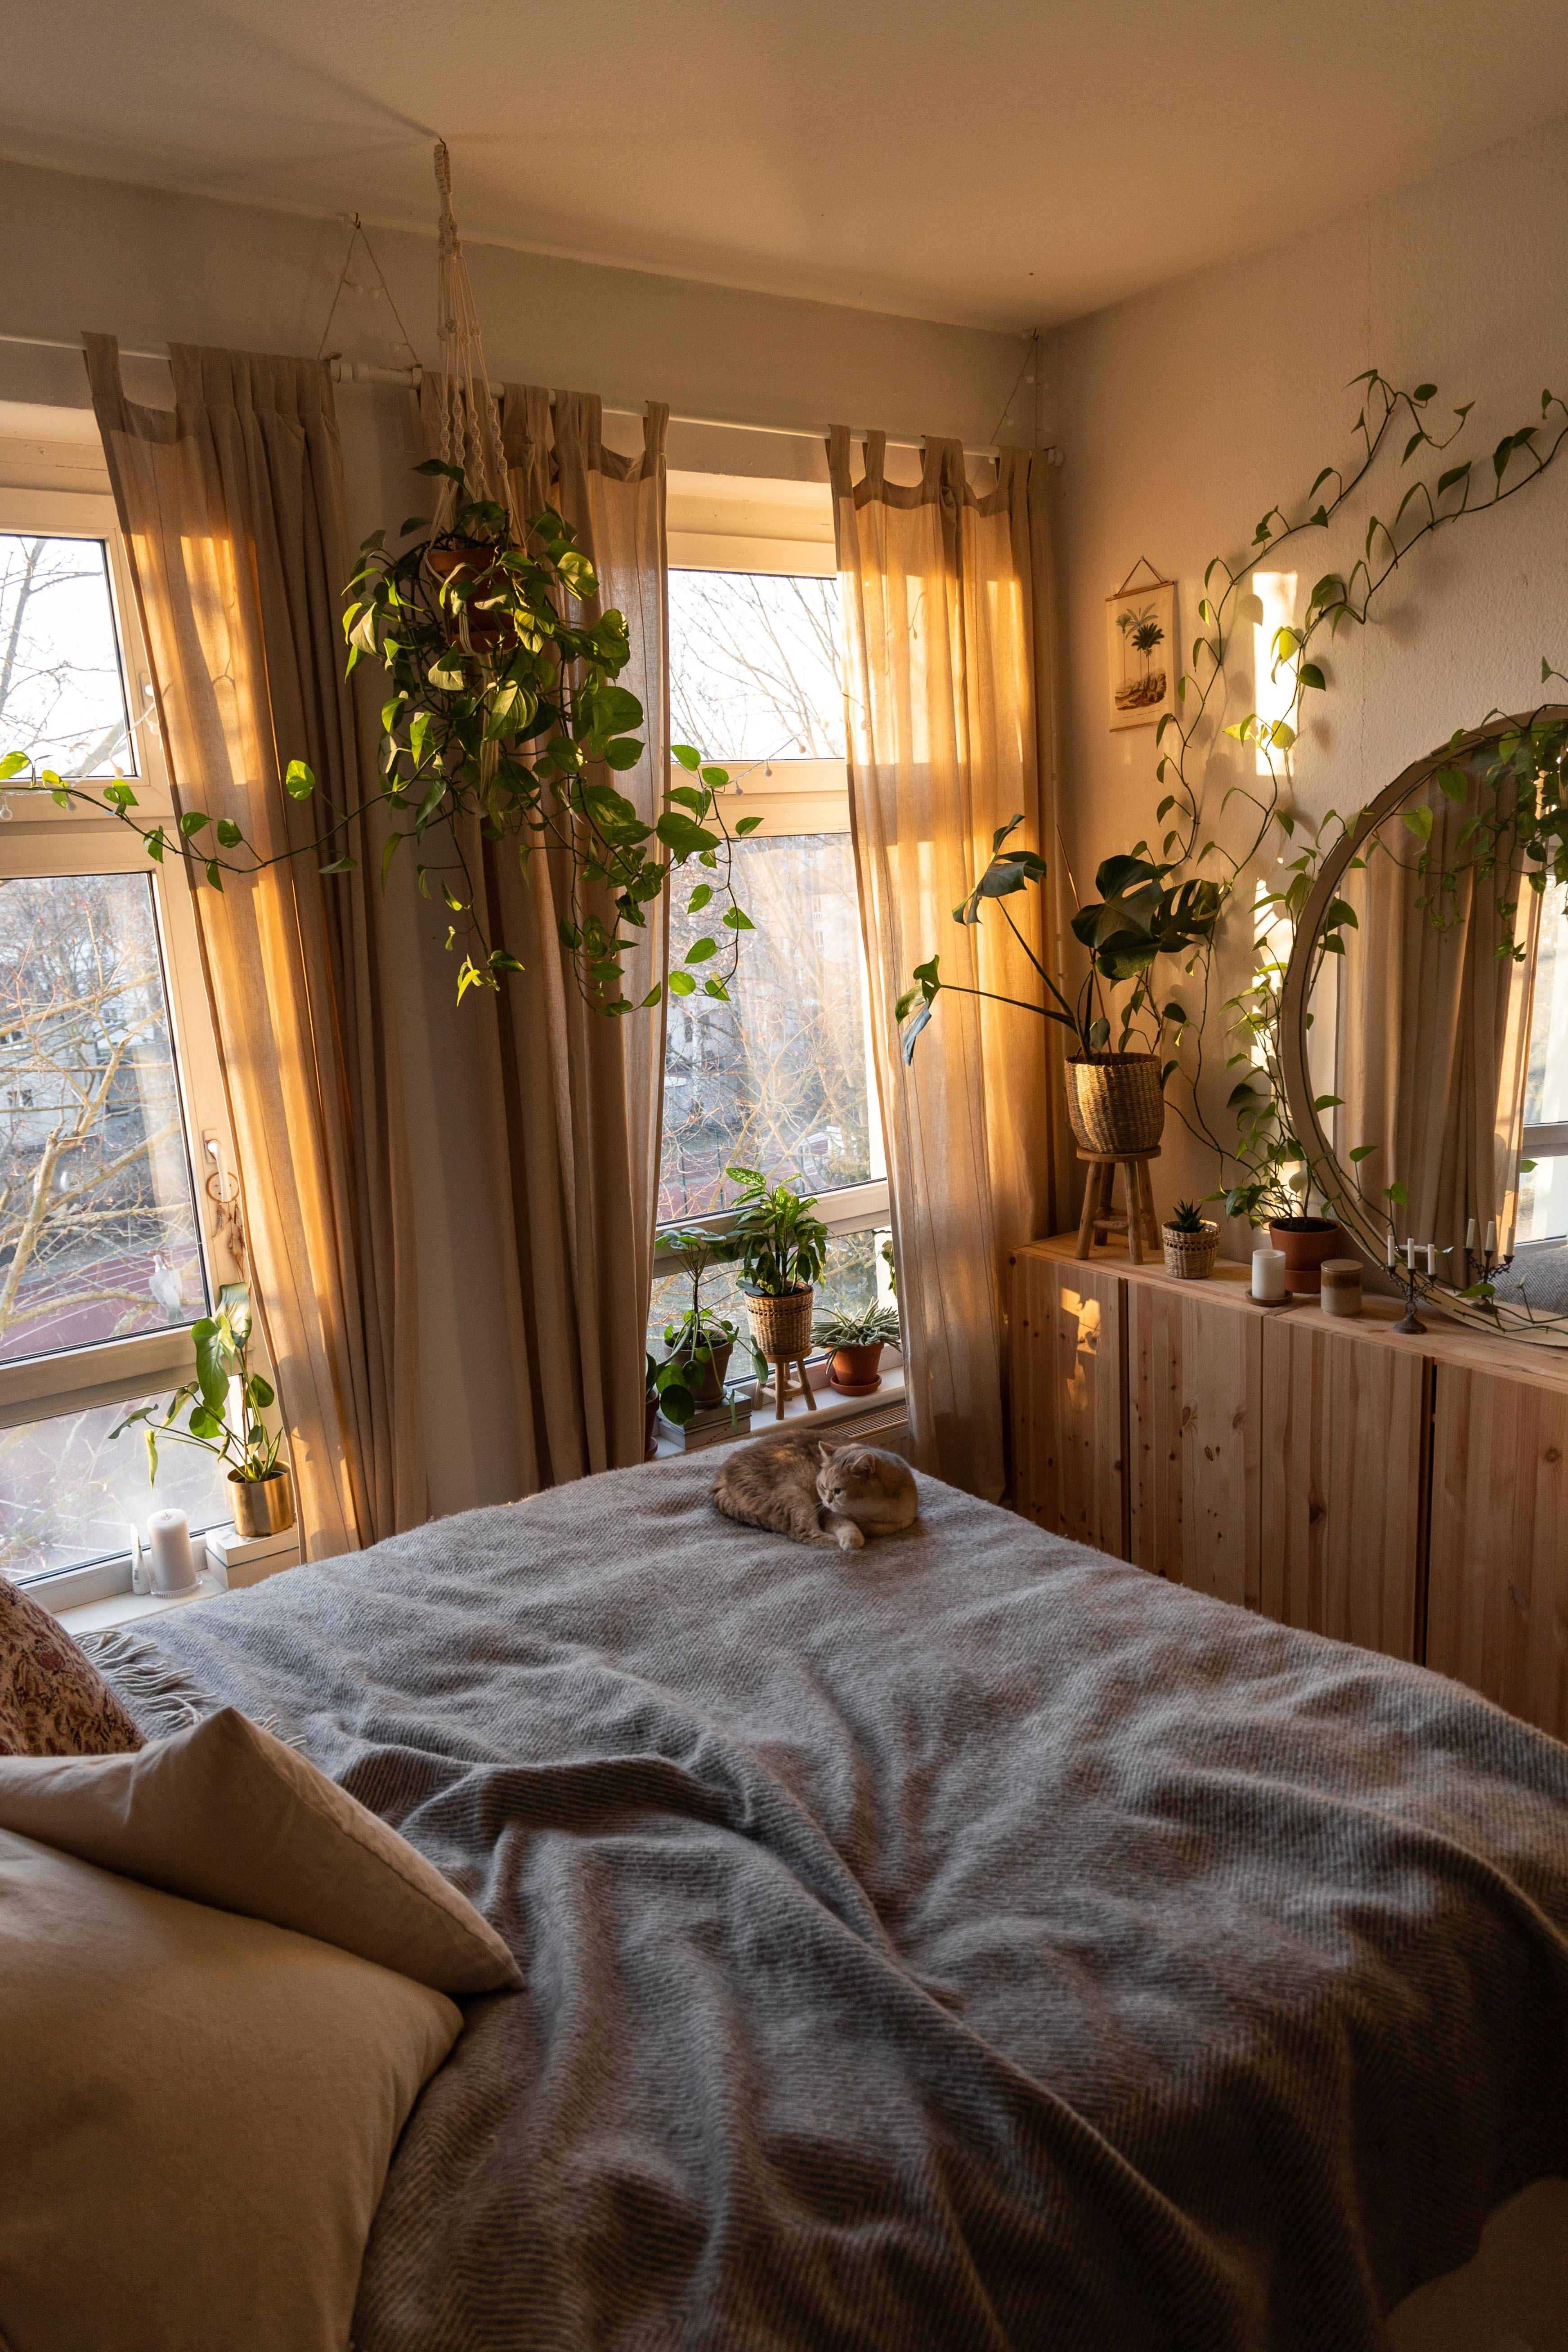 #schlafzimmer #urbanjungle #bohointerior #bedroom #interiorinspo #interiordecor #altbauwohnung #homedecor